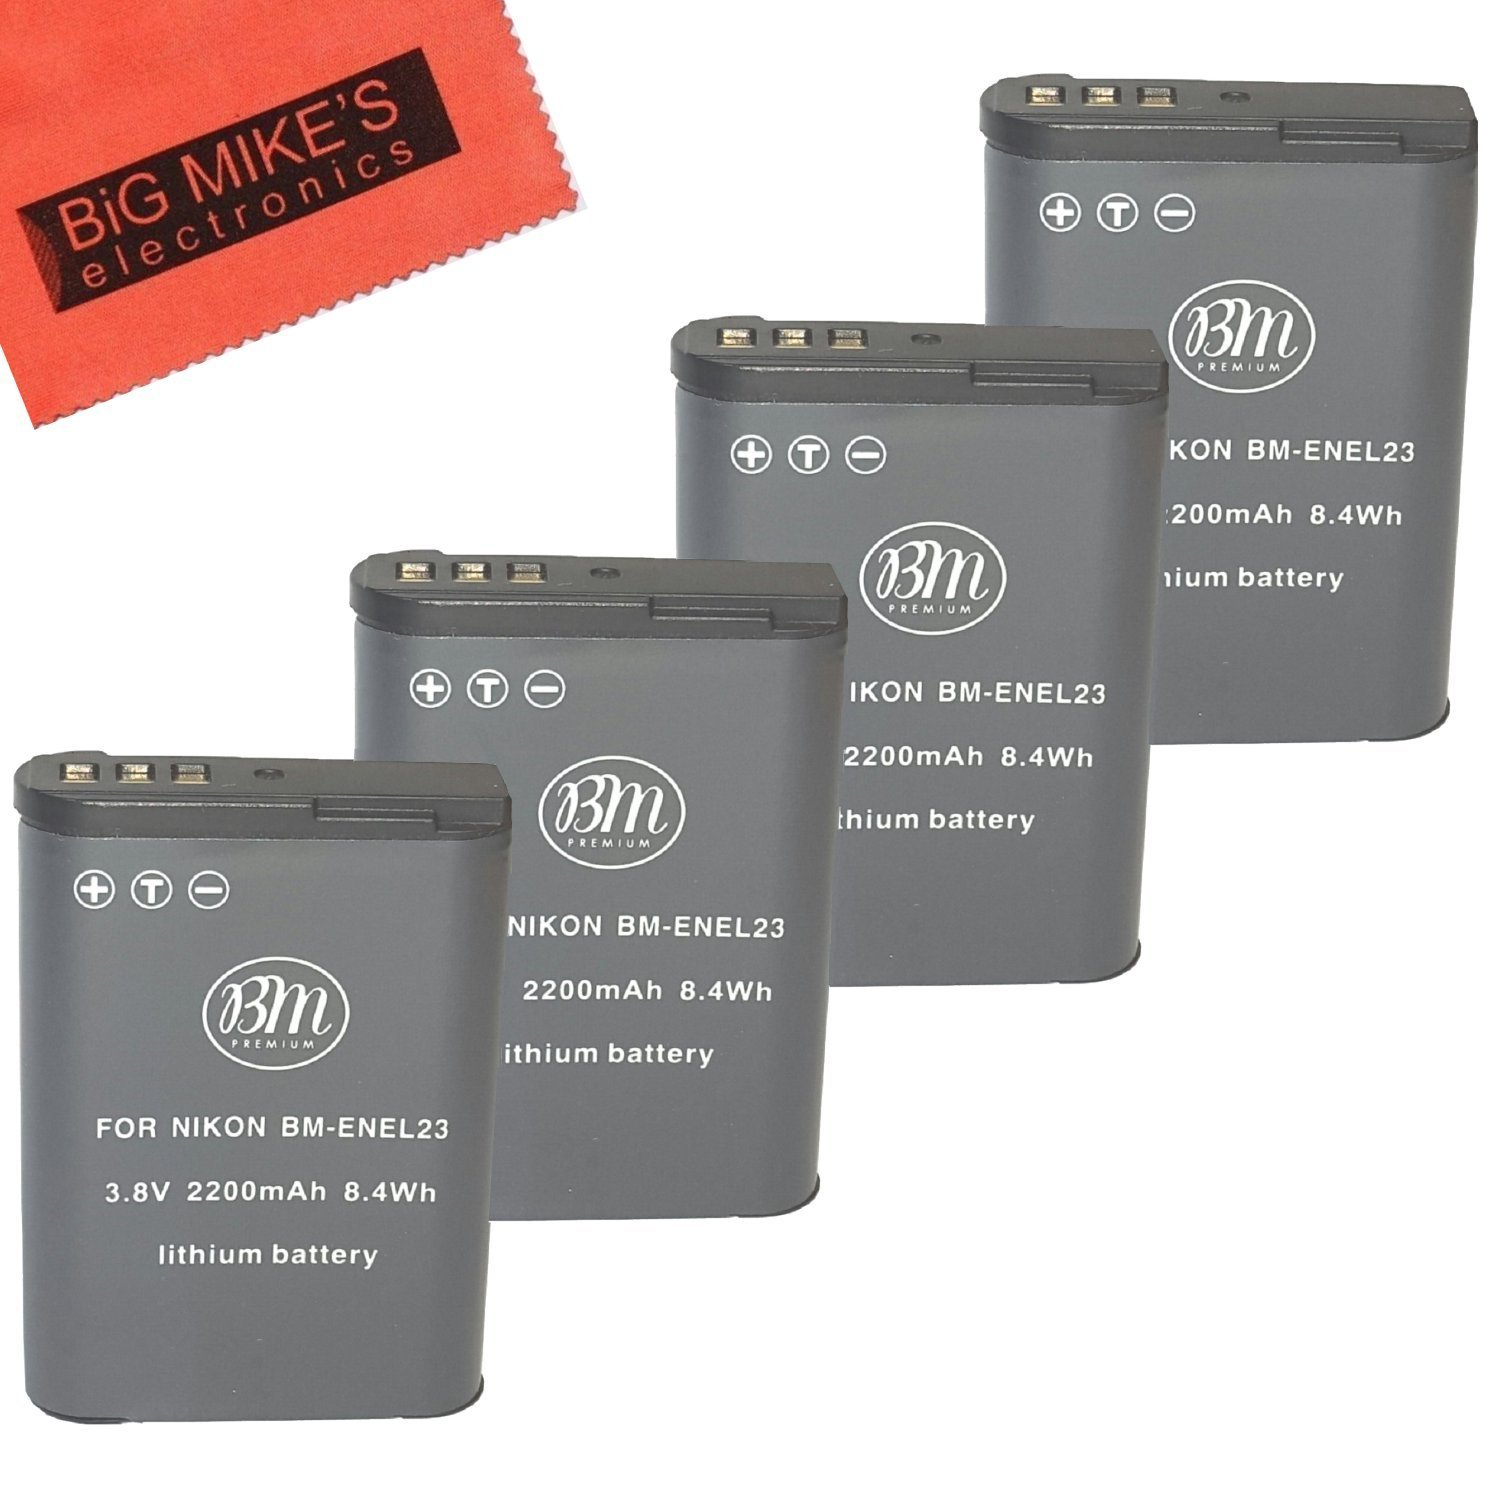 BM Premium 4-Pack of EN-EL23 Batteries for Nikon Coolpix B700, P900, P600, P610, S810c Digital Camera